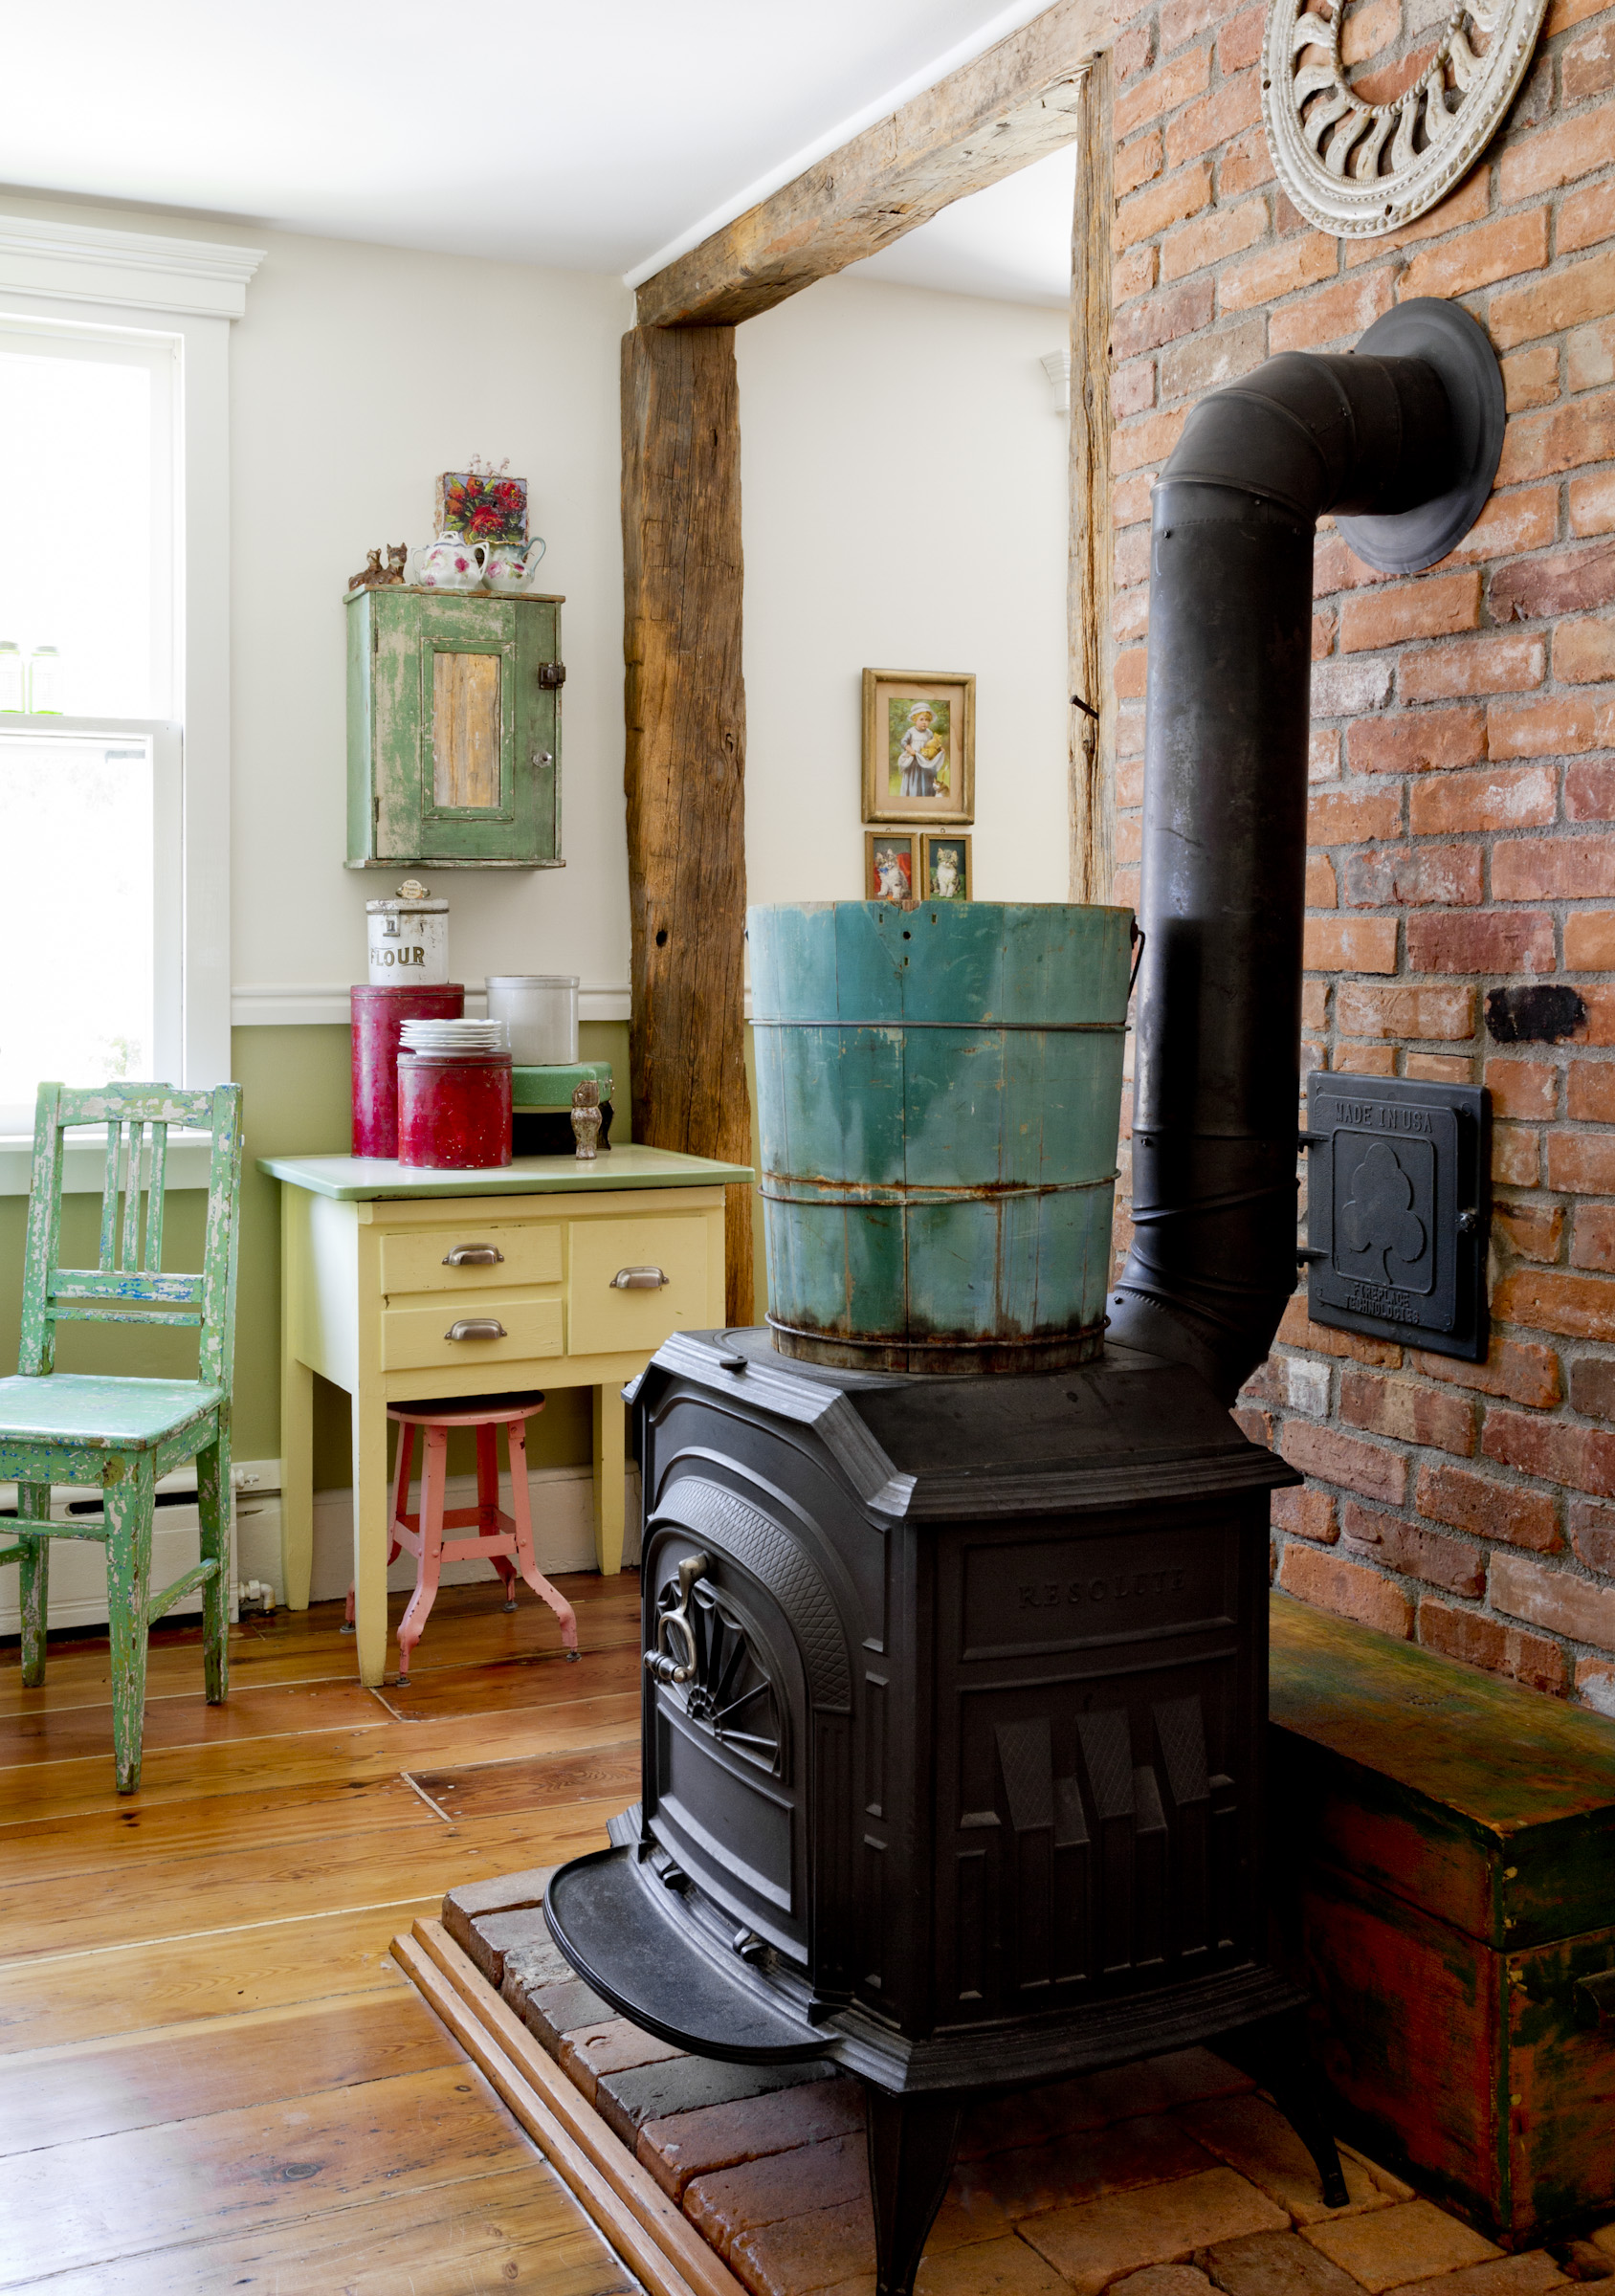 charming upstate new york home filled with colorful antique finds